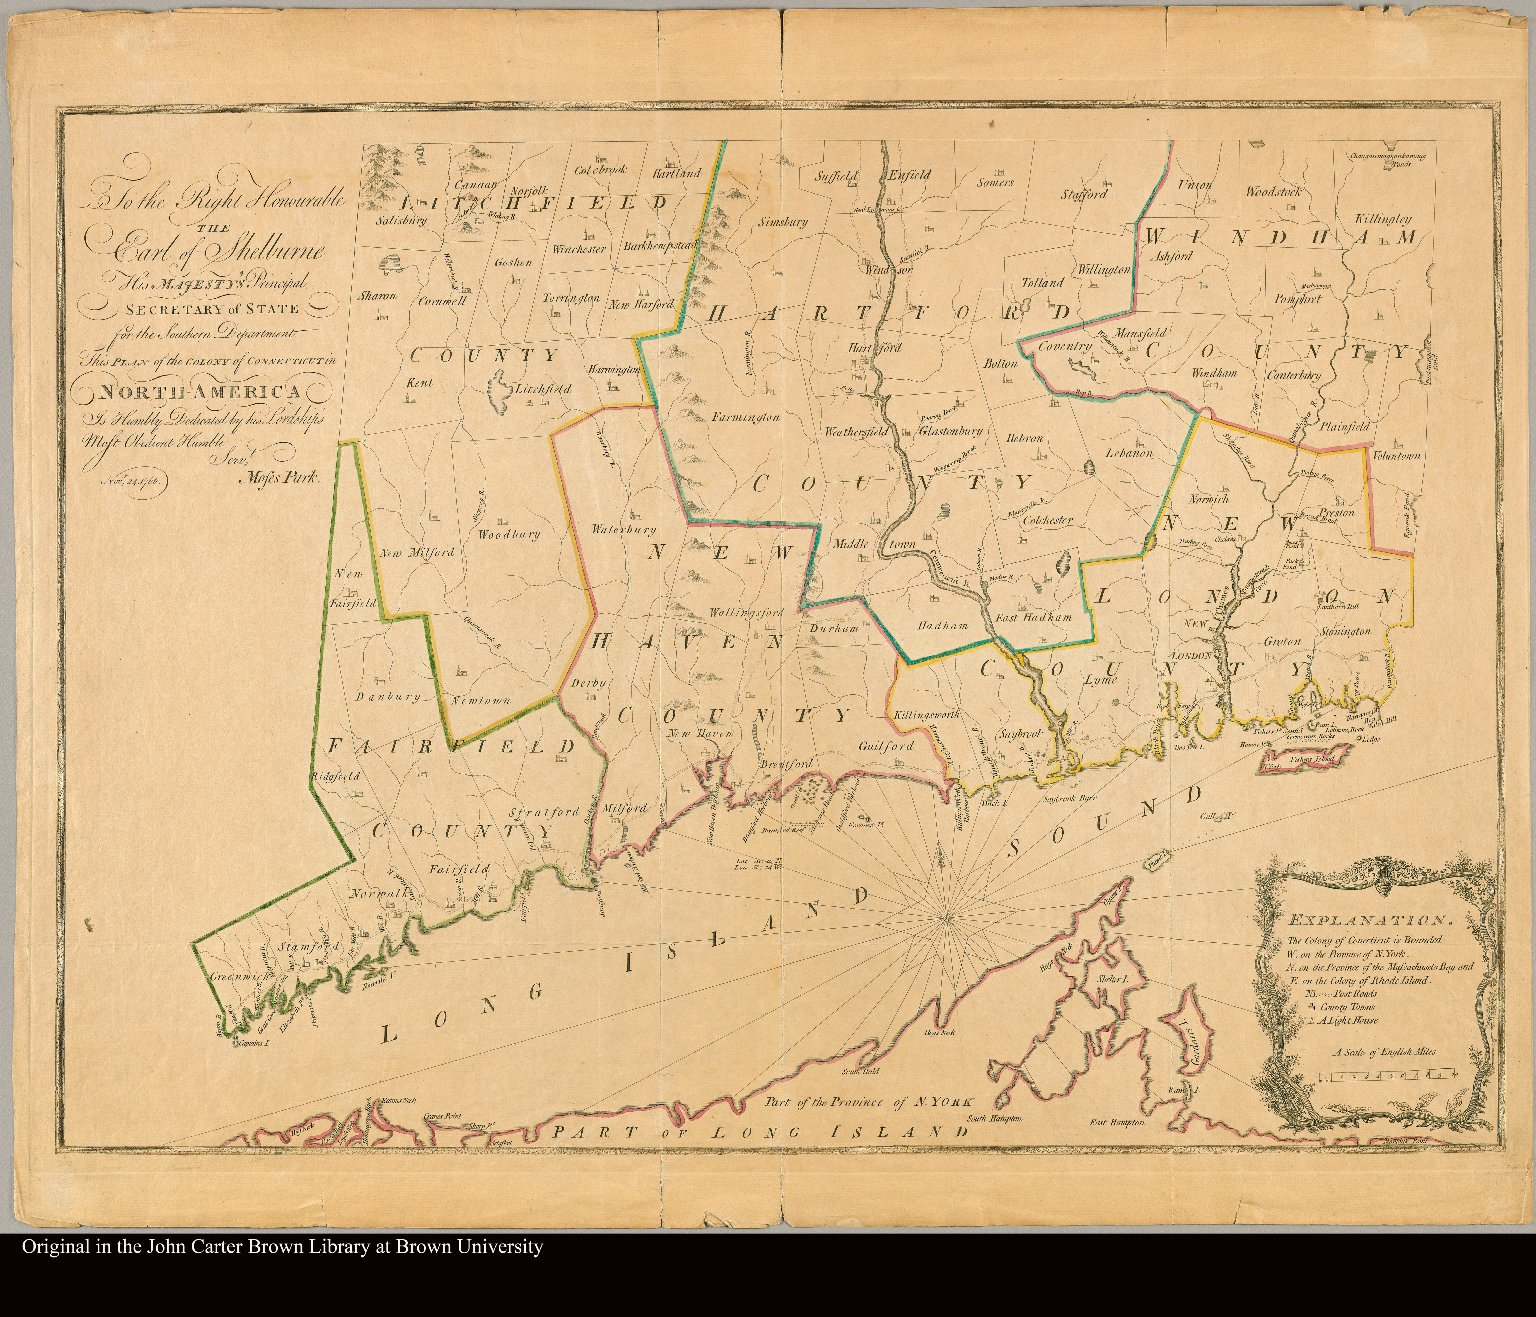 To the Right Honourable the Earl of Shelbourne, His Majesty's Principal Secretary of State for the Southern Department this plan of the Colony of Connecticut in North-America is humbly dedicated by His Lordship's most obedient humble servt. Moses Park. Novr. 24, 1766